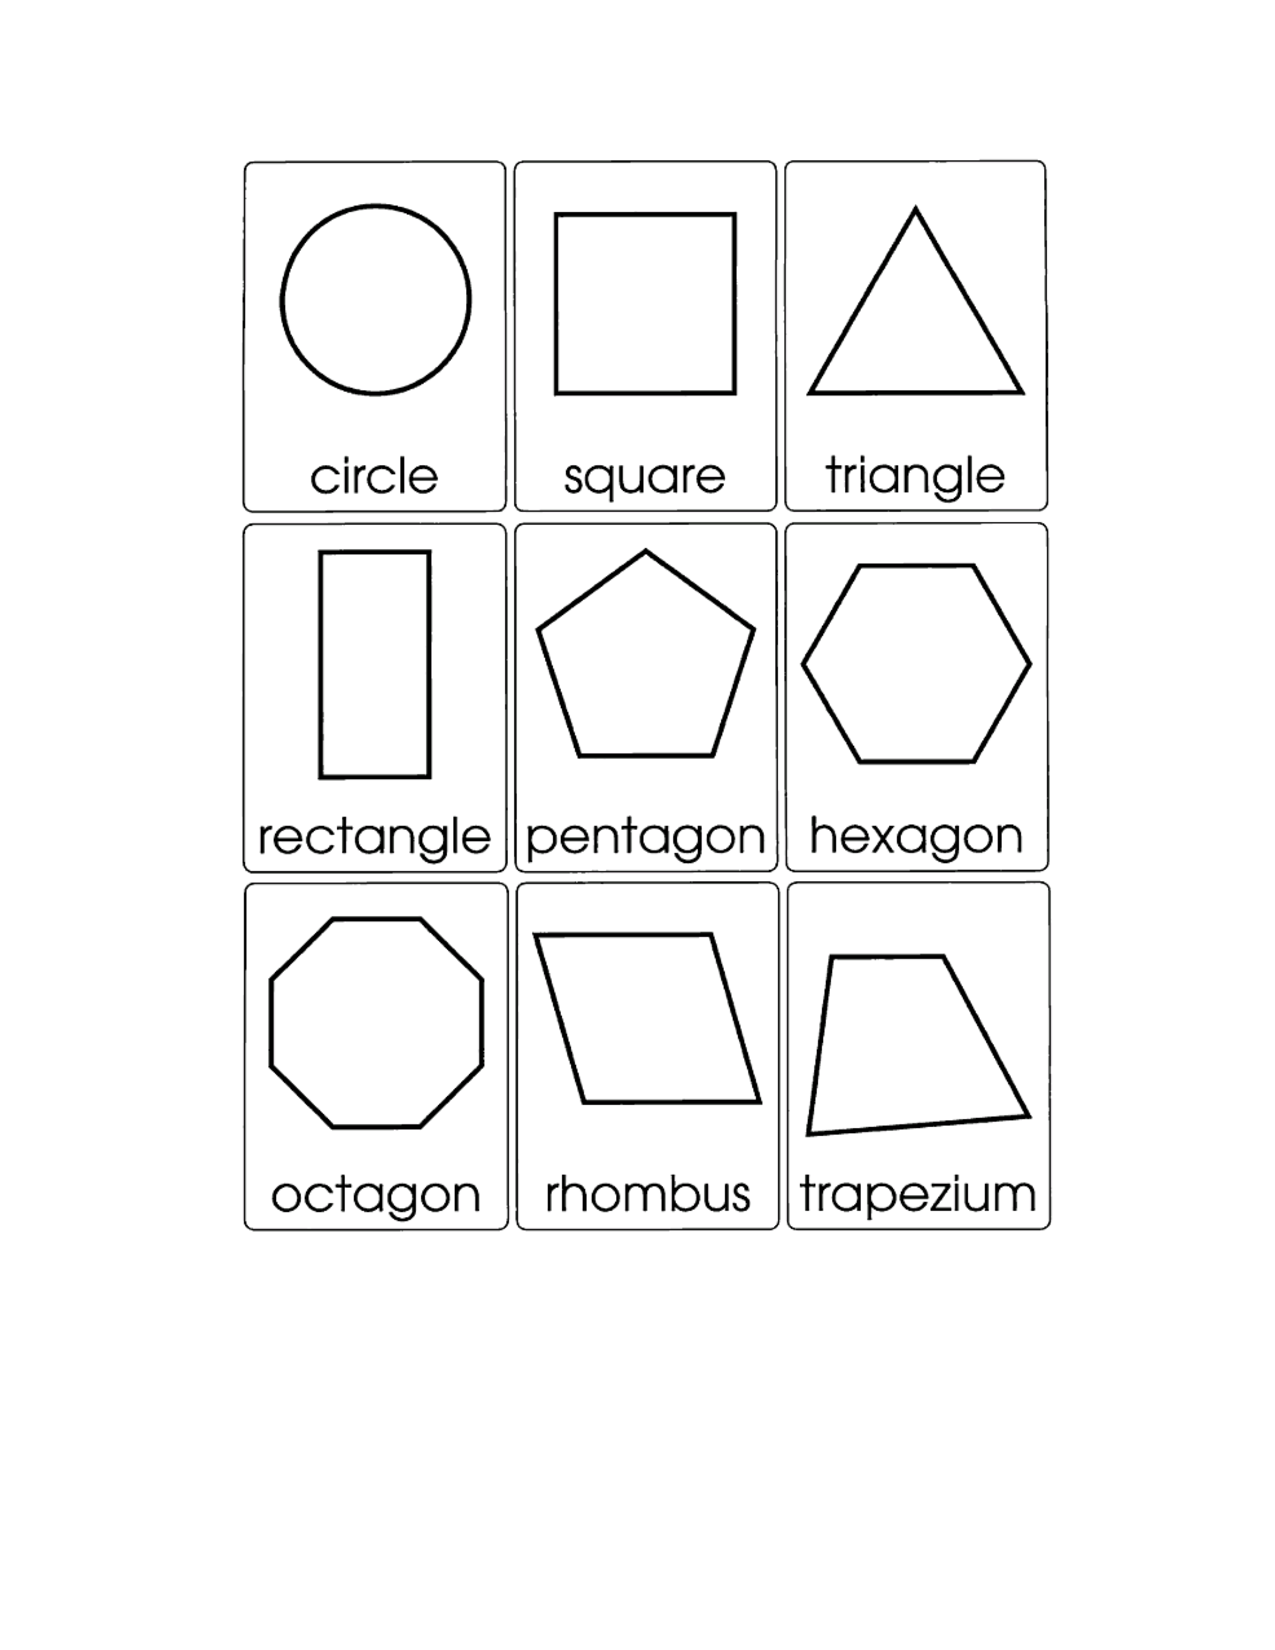 small resolution of Identifying 2d And 3d Shapes Worksheet   Printable Worksheets and  Activities for Teachers